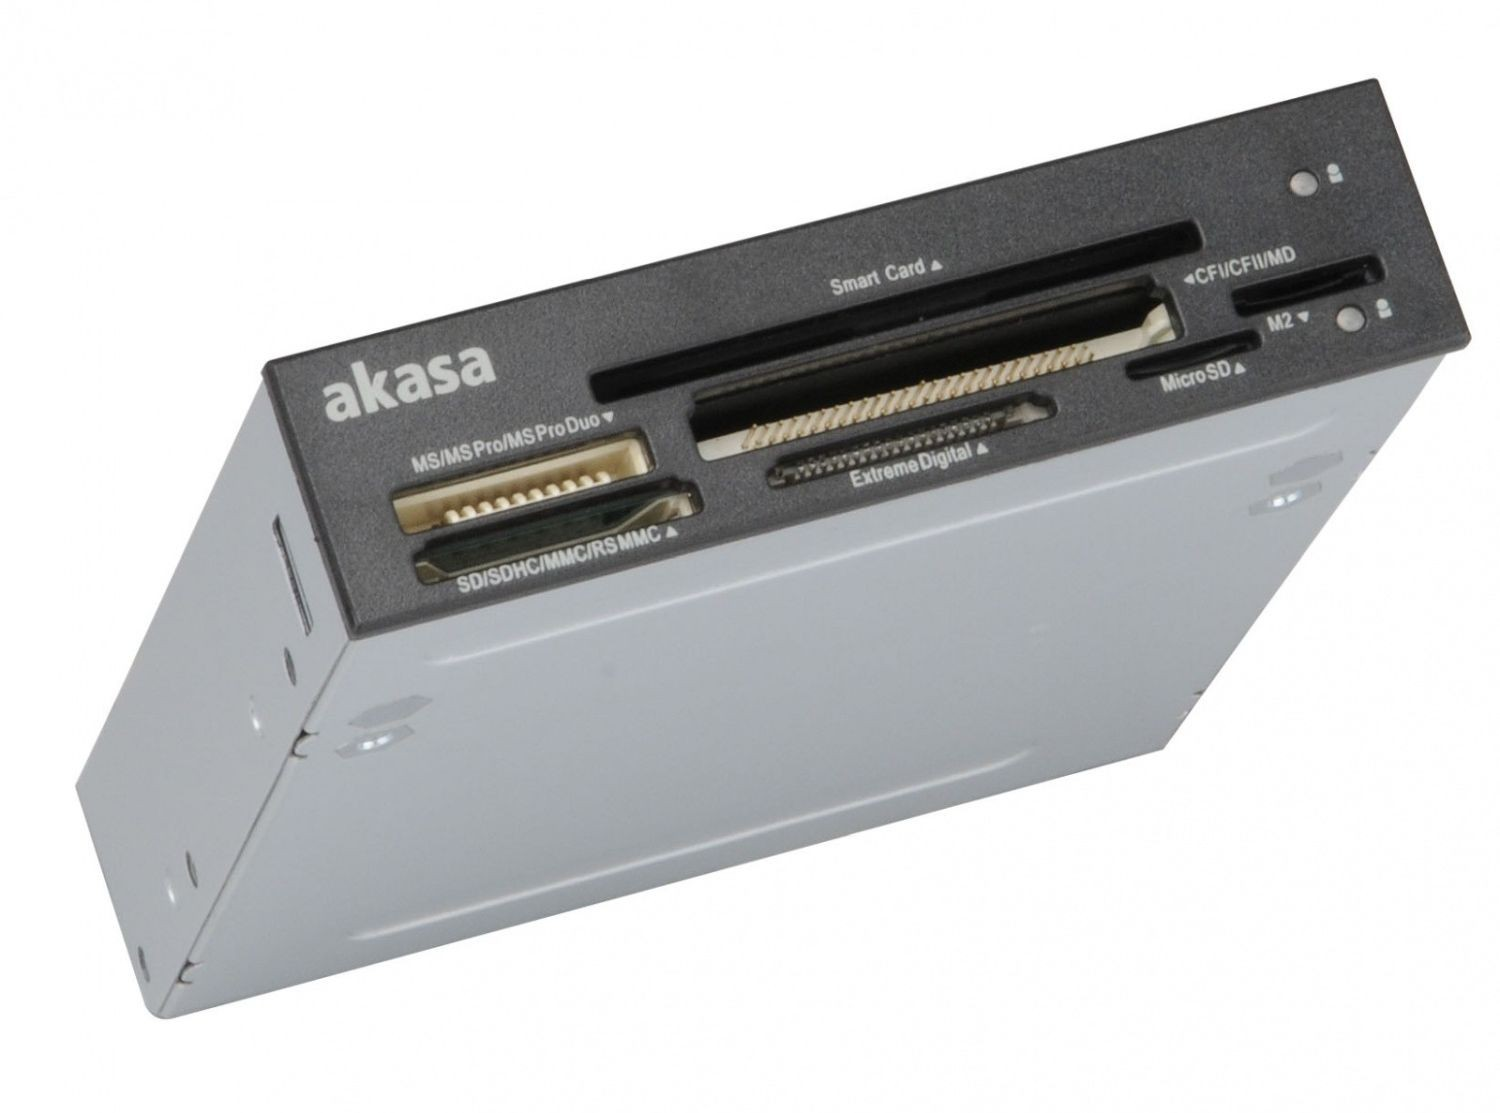 Akasa CZYTNIK KART ID i Smart Card Port AK-ICR-09